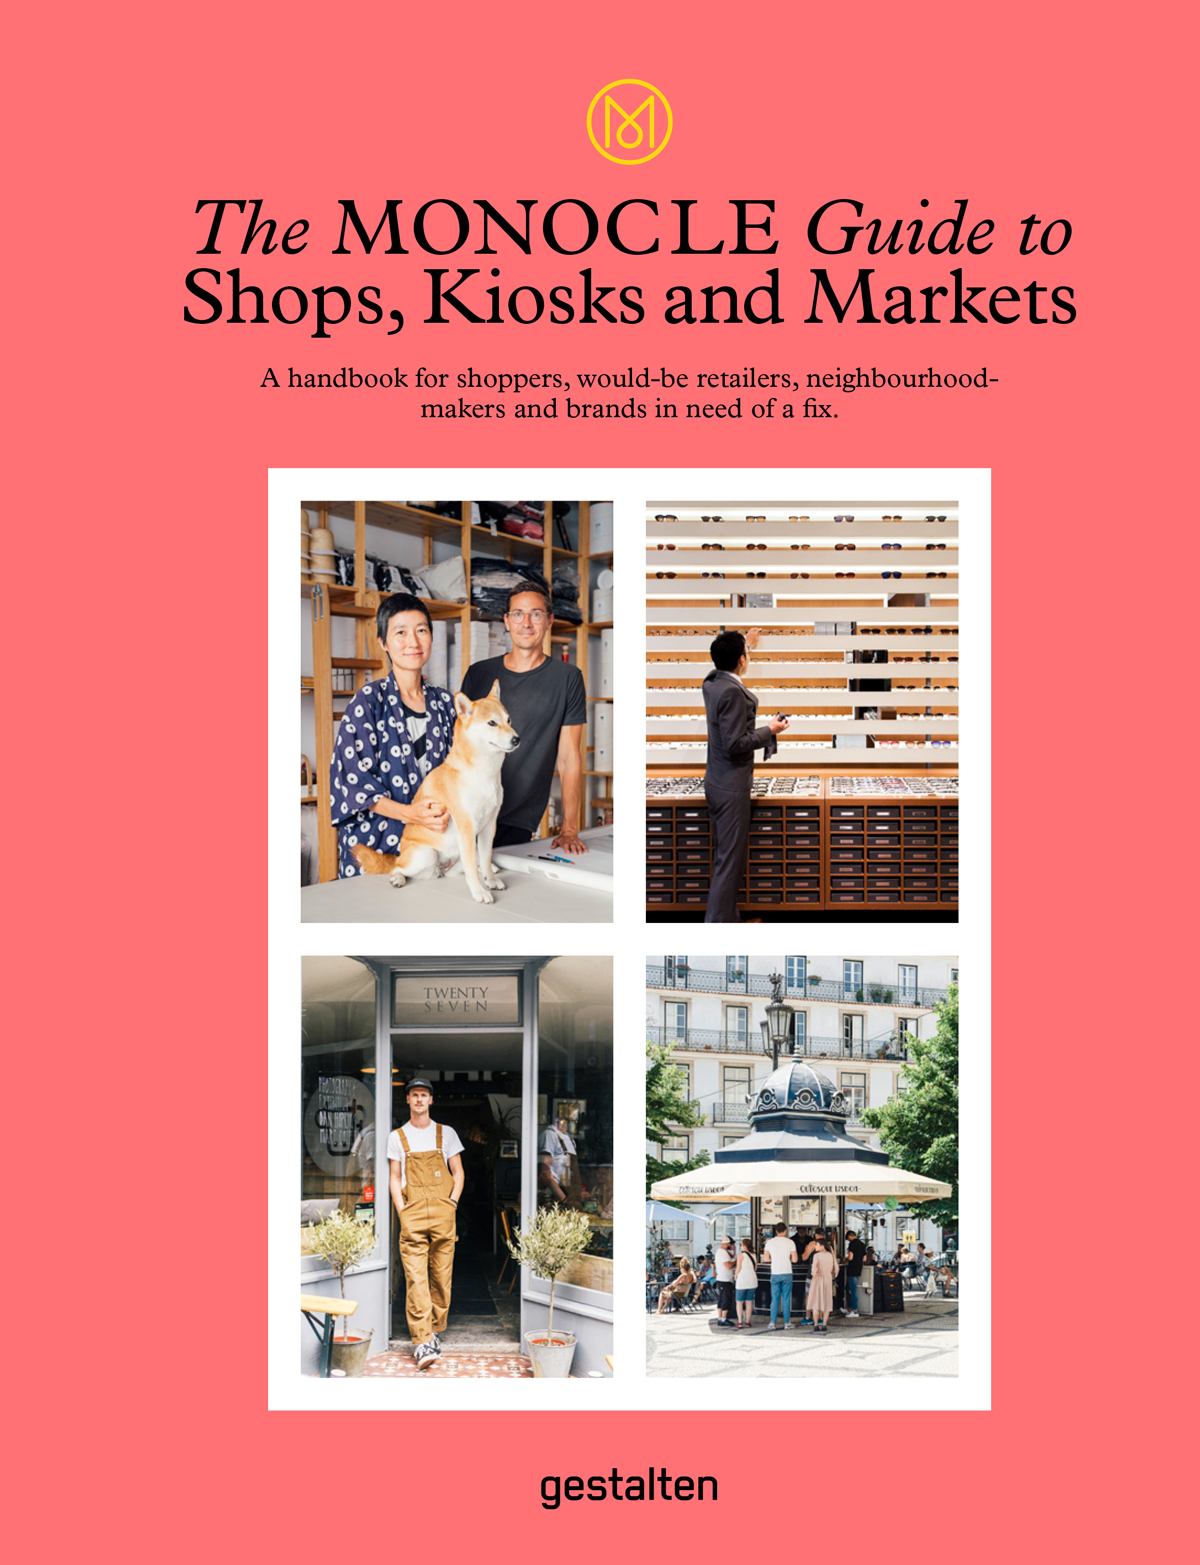 Slanted_The_Monocle_Gute_Shops_1200px_00